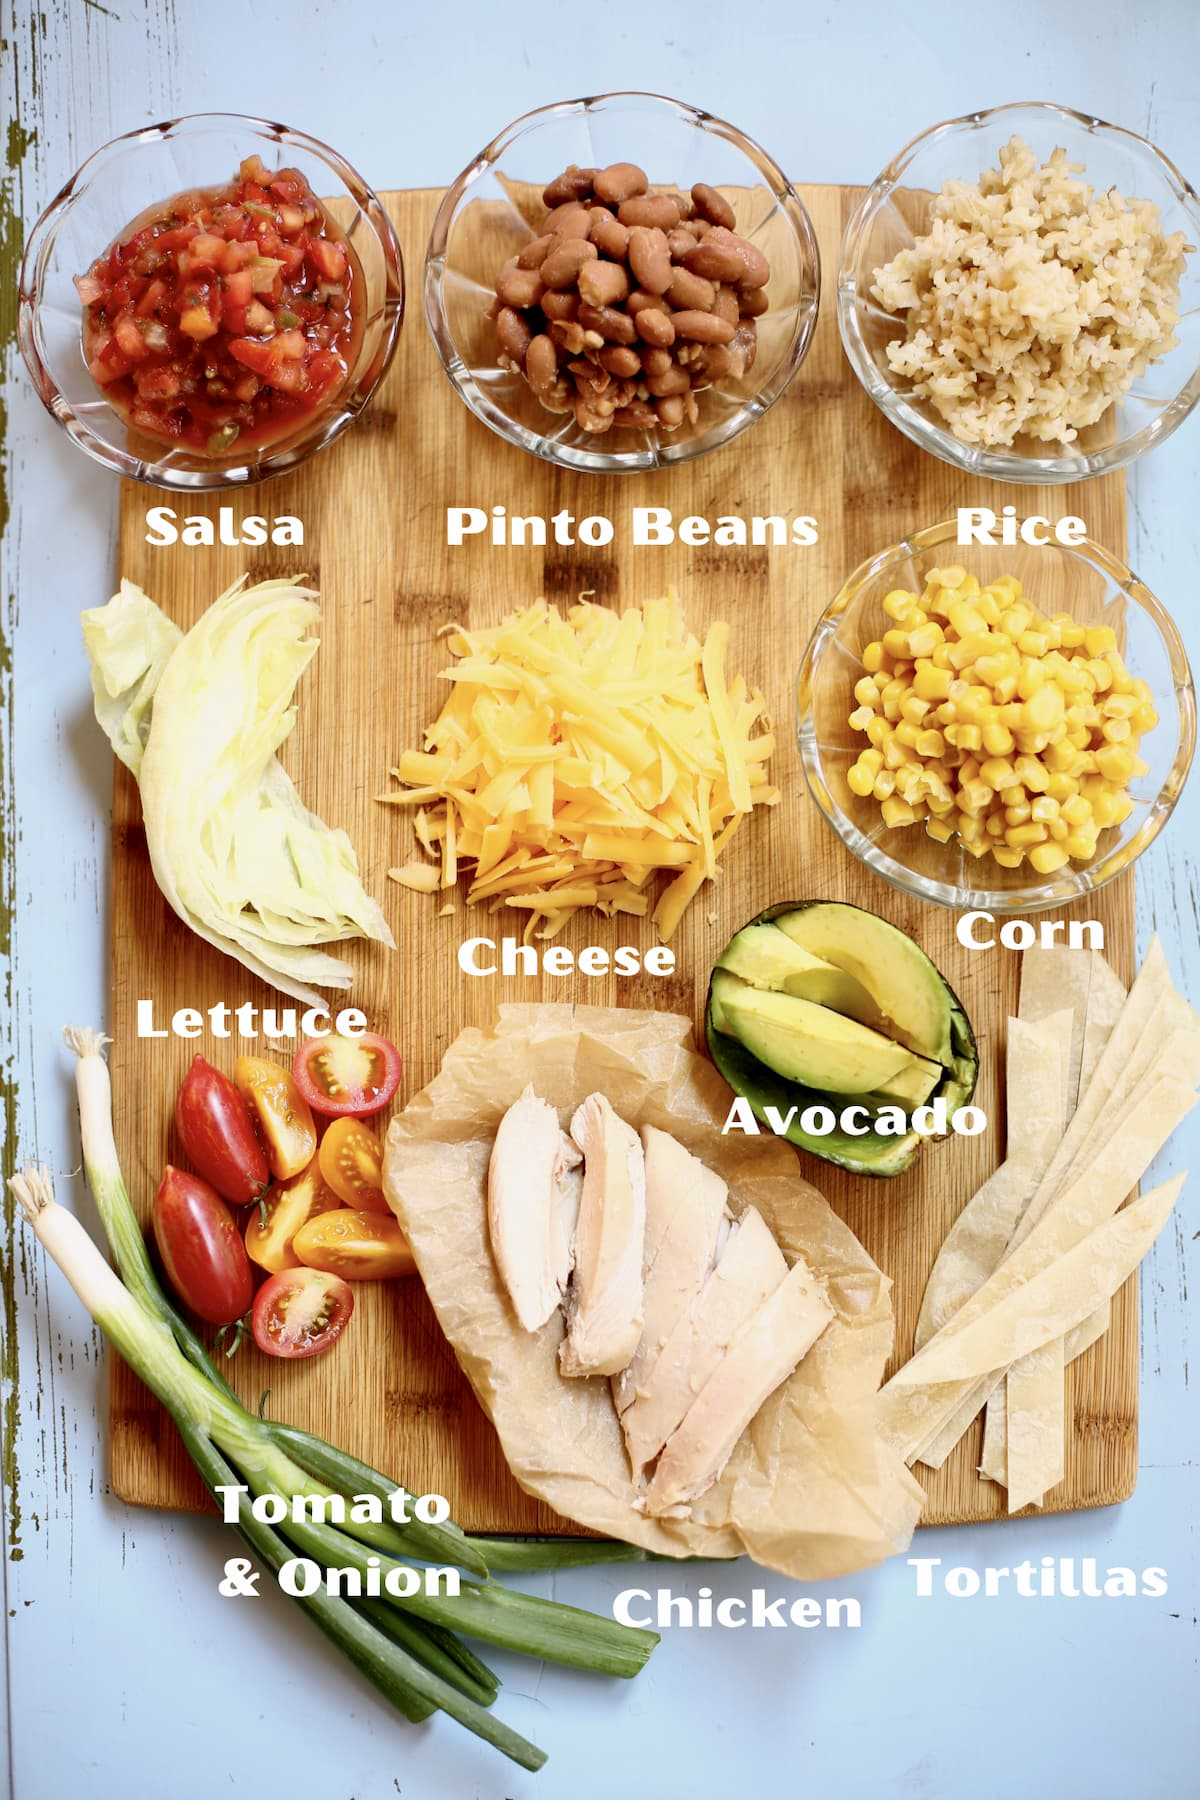 a cutting board of prepped ingredients for a meal,each one marked with text